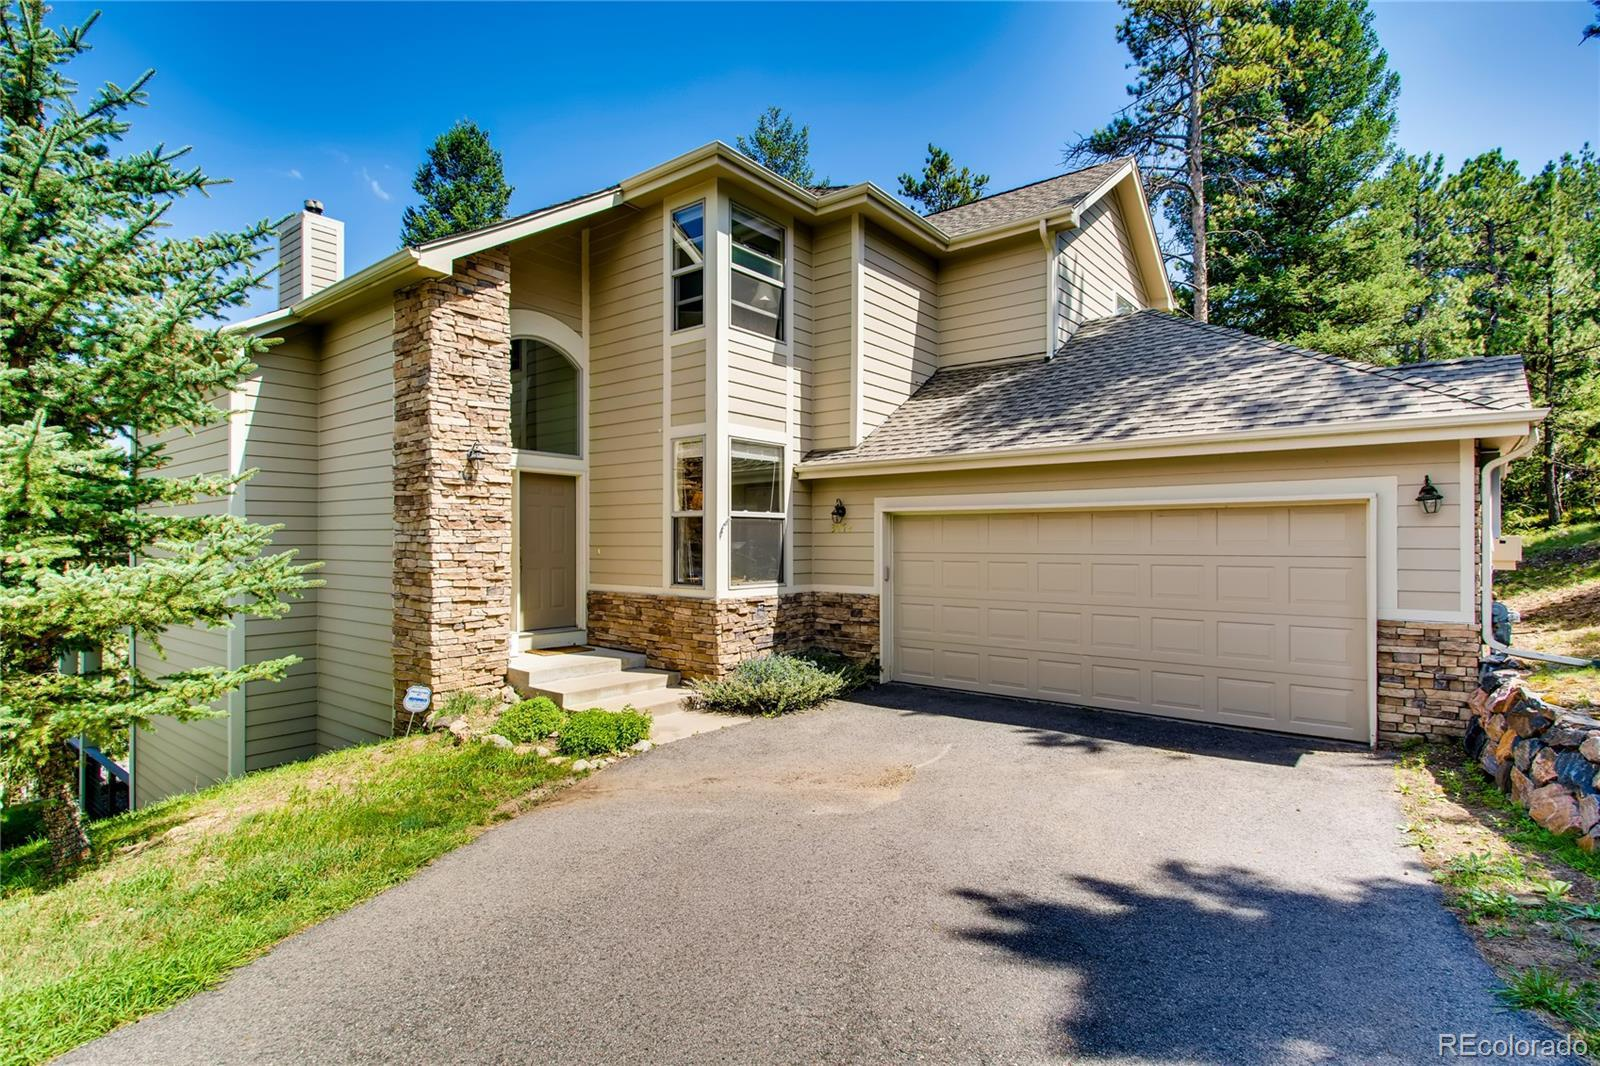 3474 Woodlands Way, Evergreen, CO 80439 - #: 8765749